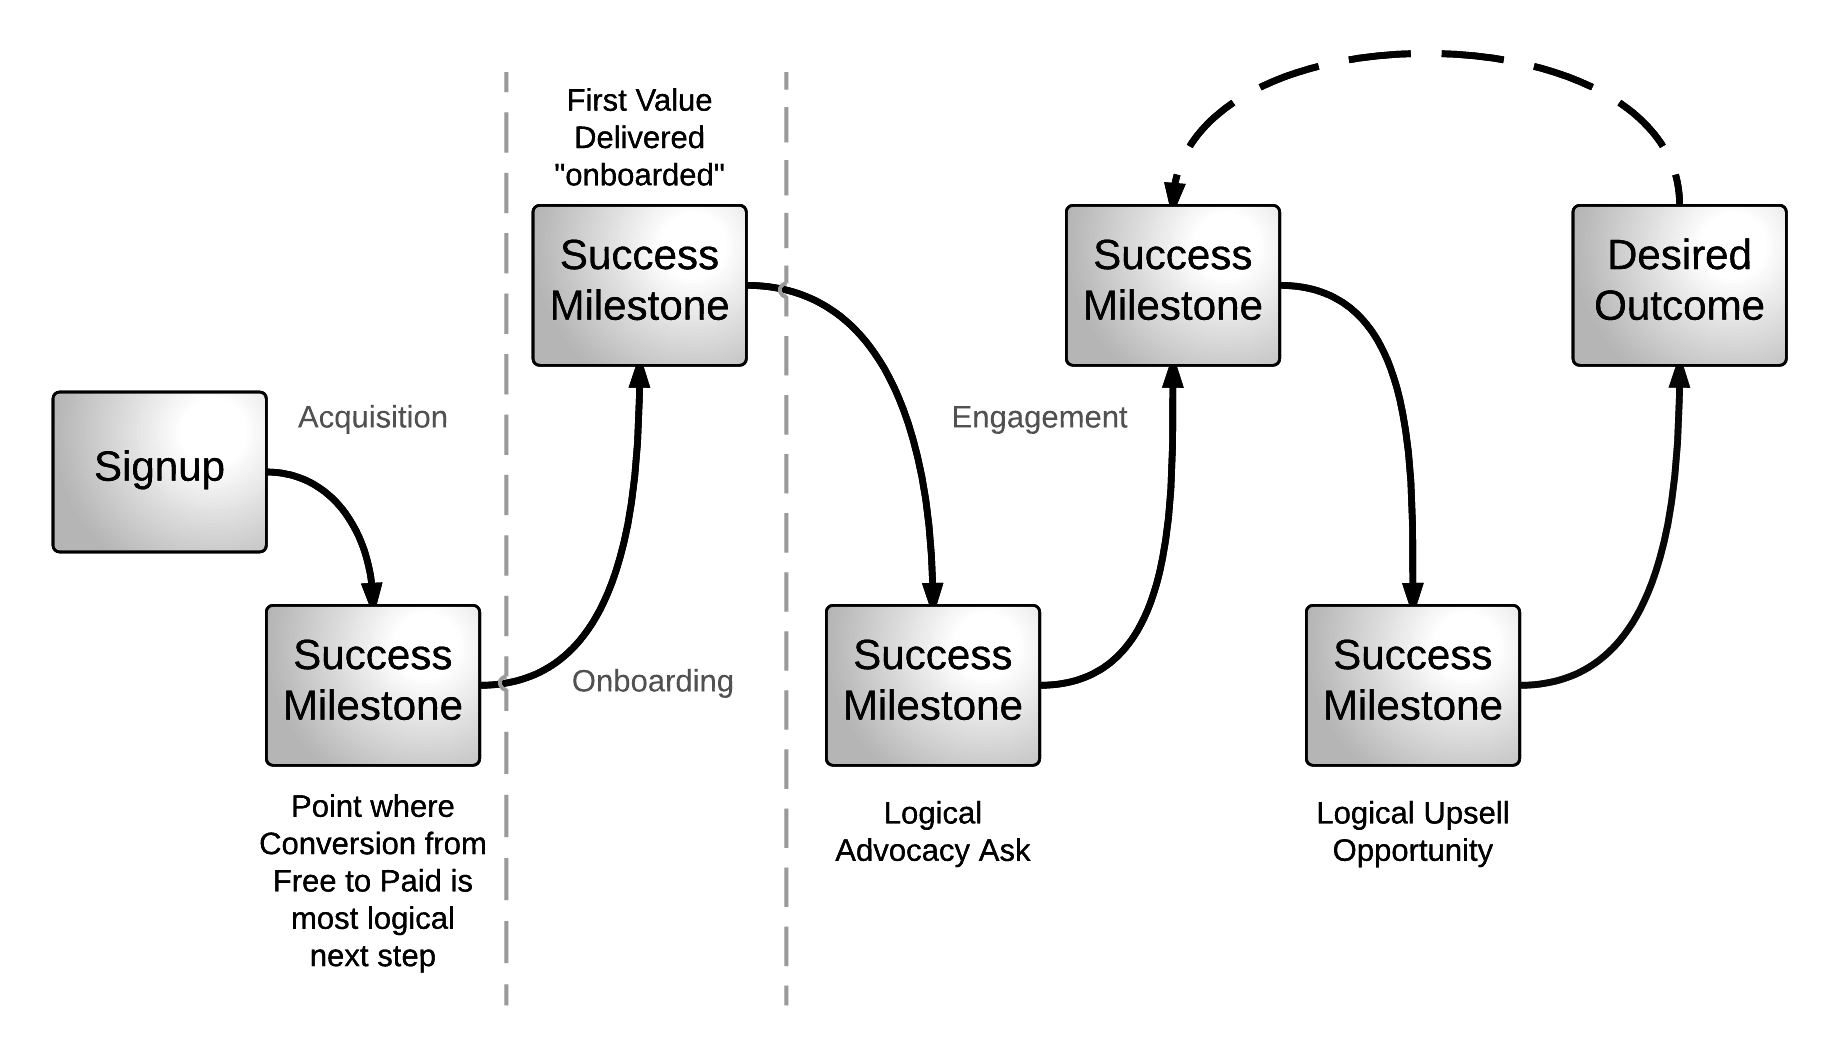 Desired-Outcome-Success-Milestones-2.png